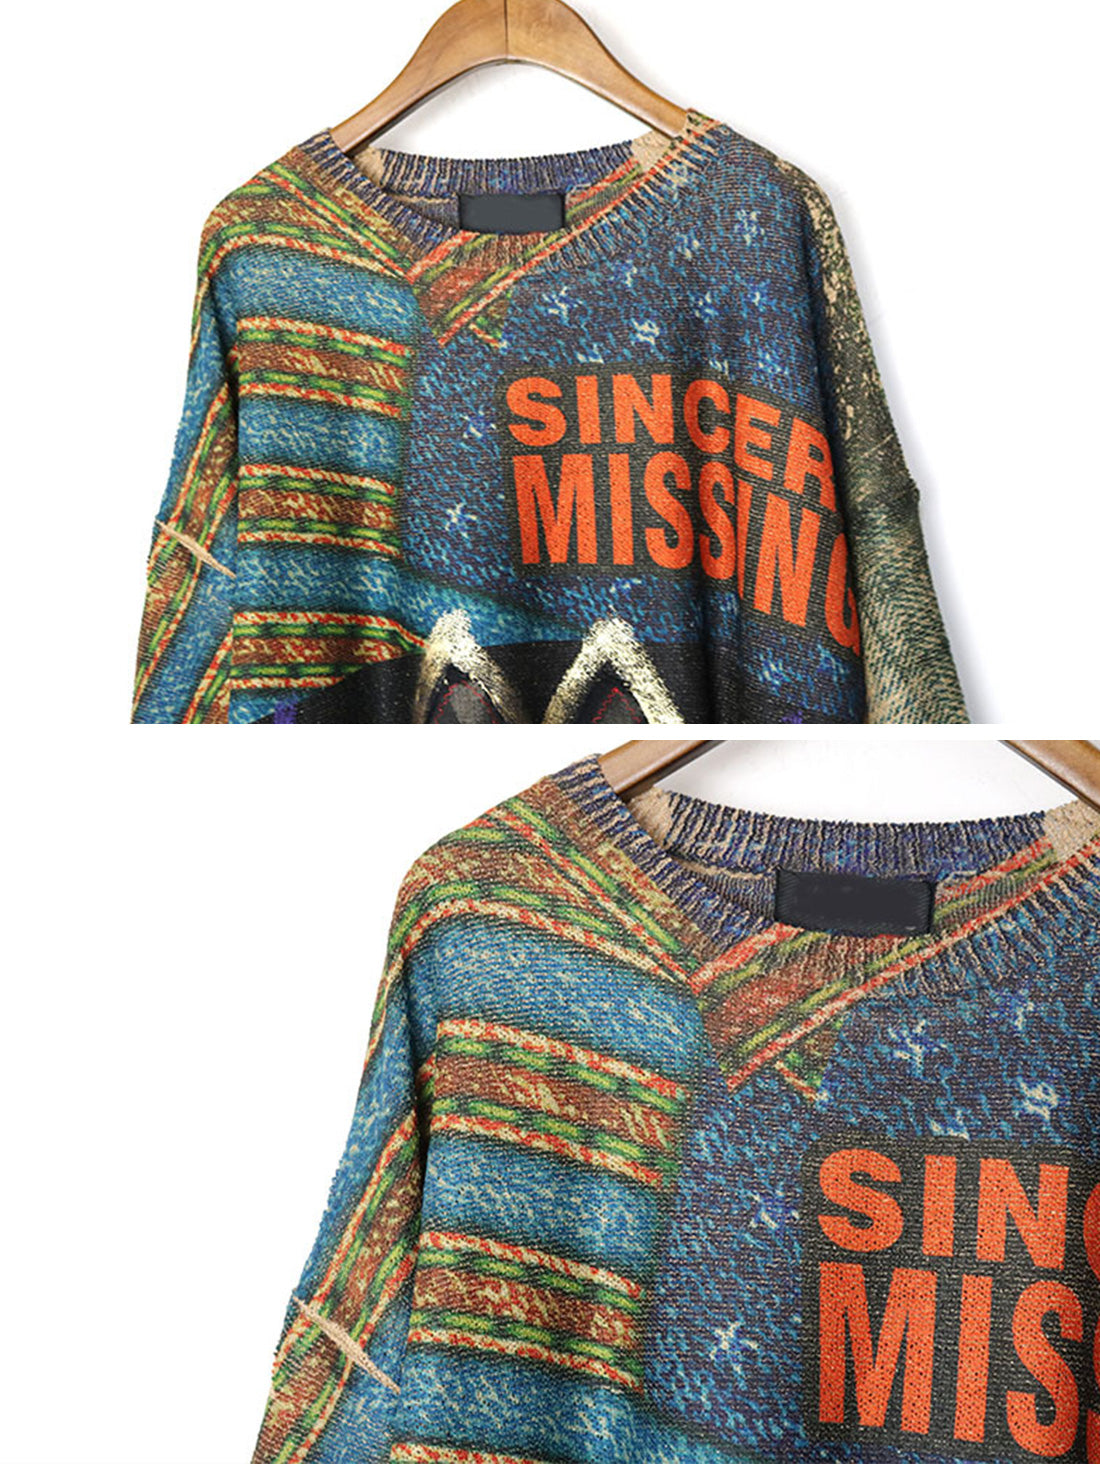 Sincerity Missing Sweater Top Details 1